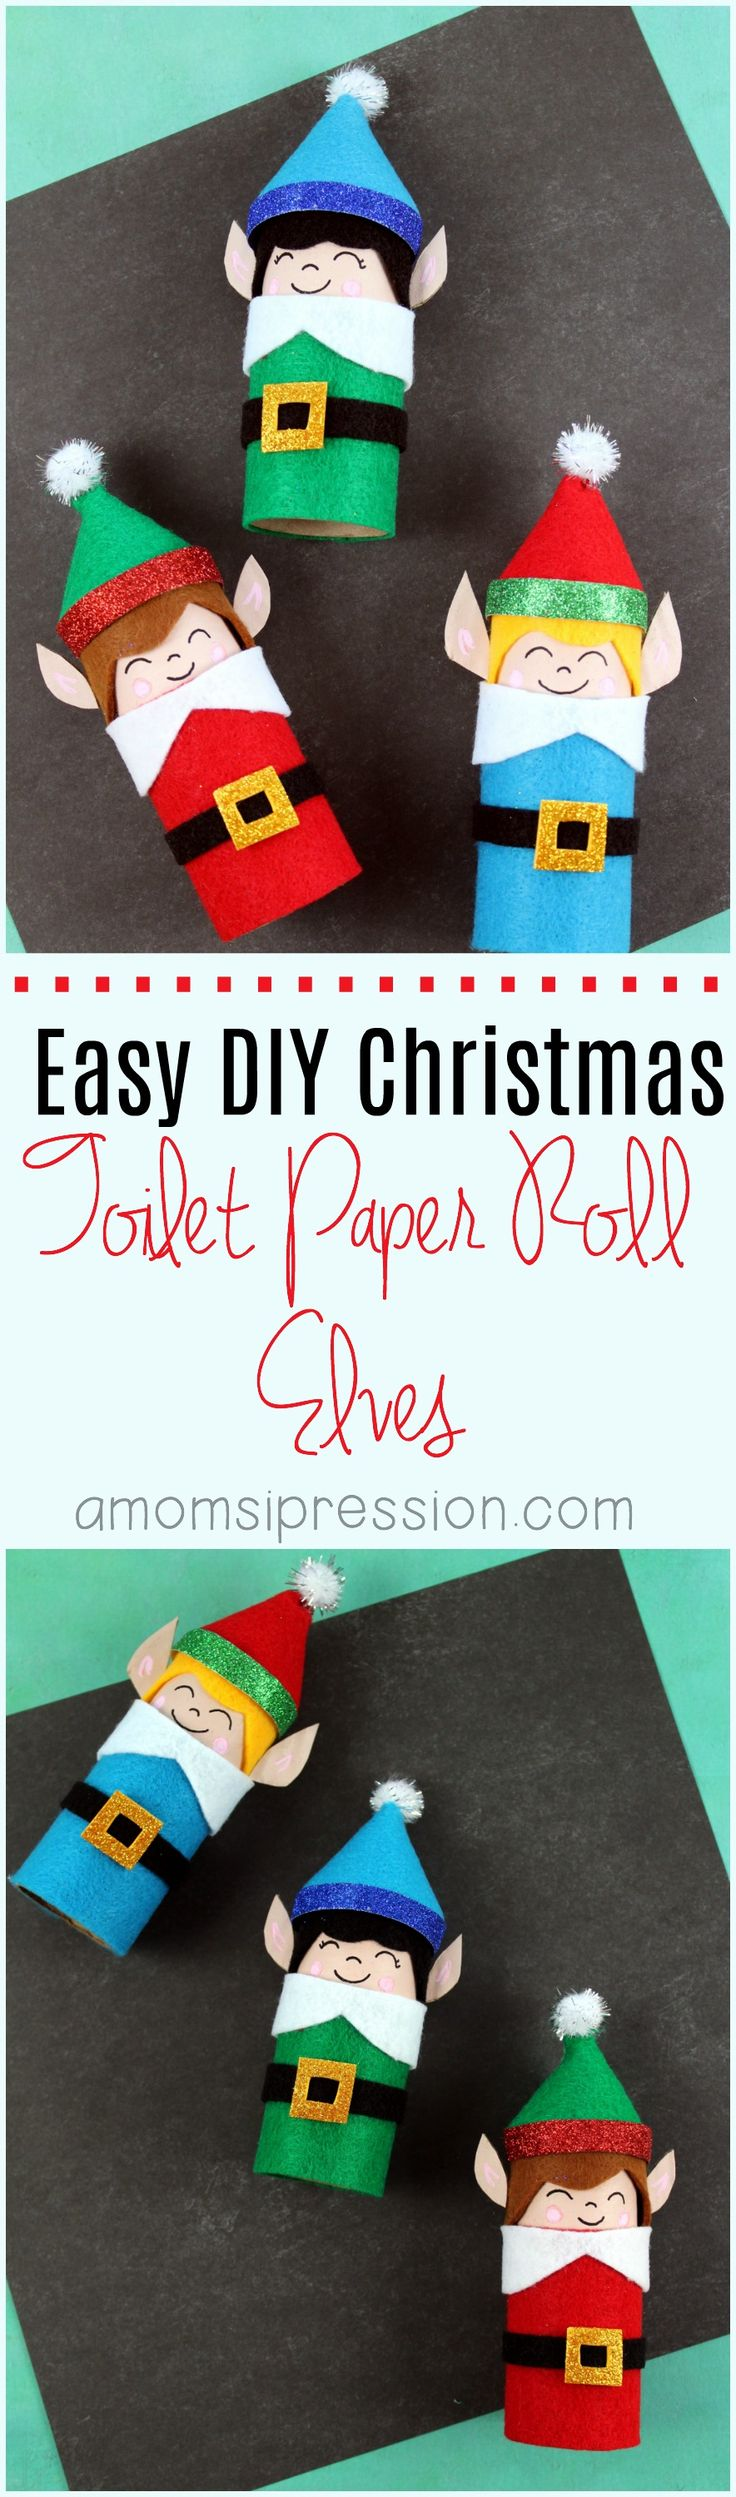 Adorable DIY Christmas toilet paper roll elves are easy crafts that you can make with your kids. They are perfect for gifts for grandparents, or they could easily be turned into ornaments for the tree. #Christmas #Crafts via @kjhodson